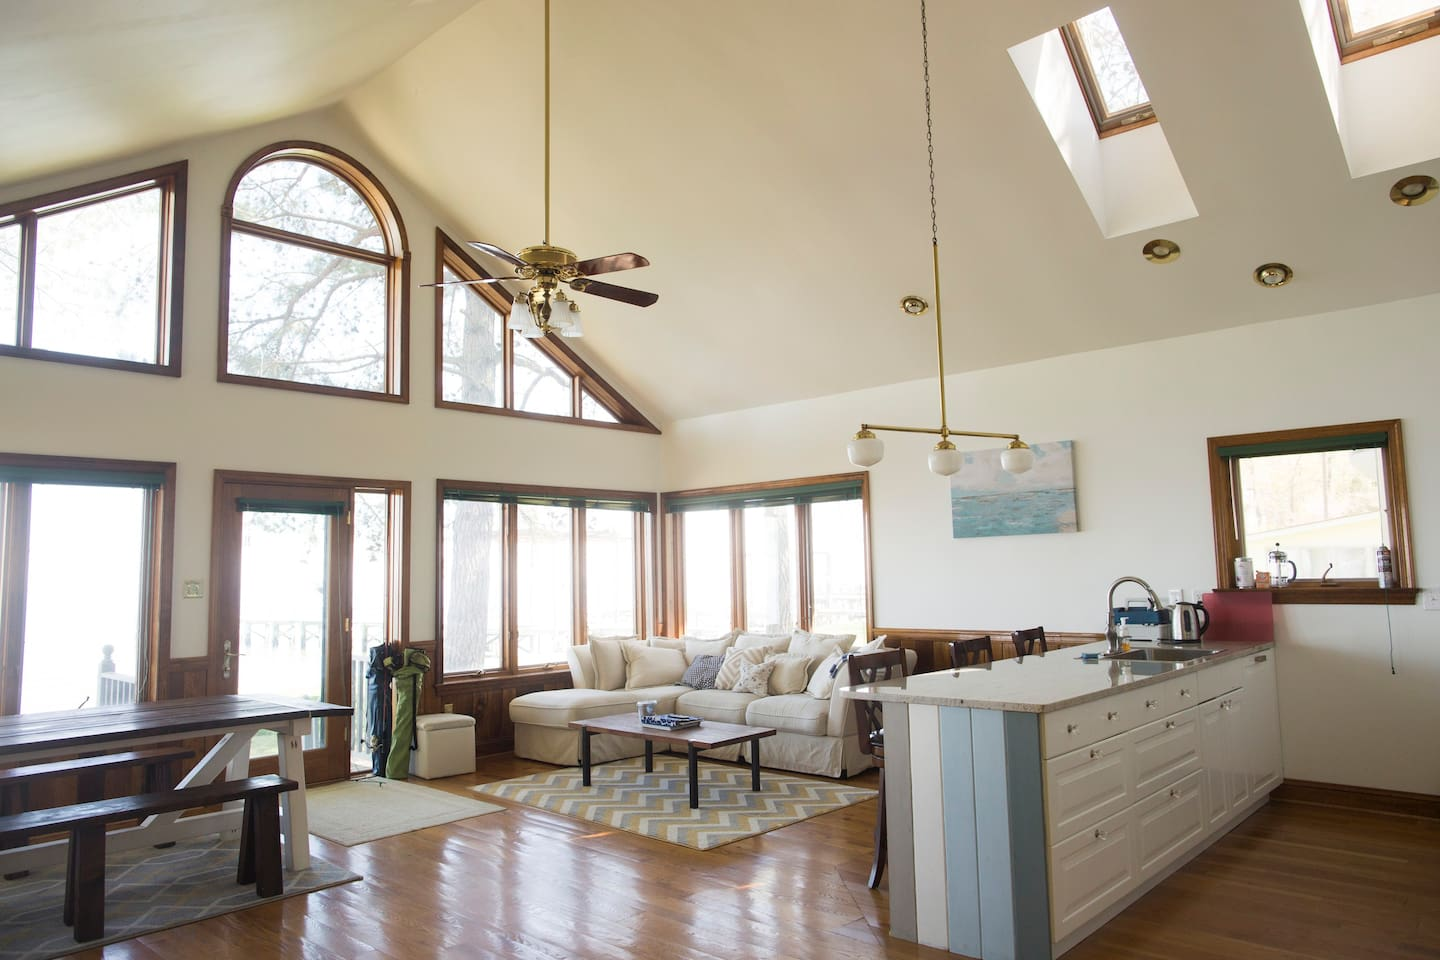 The original owner had a custom woodworking business in Bethesda, MD. The wood floors and paneling are beautiful accents to the cottage's spacious open-concept living space.